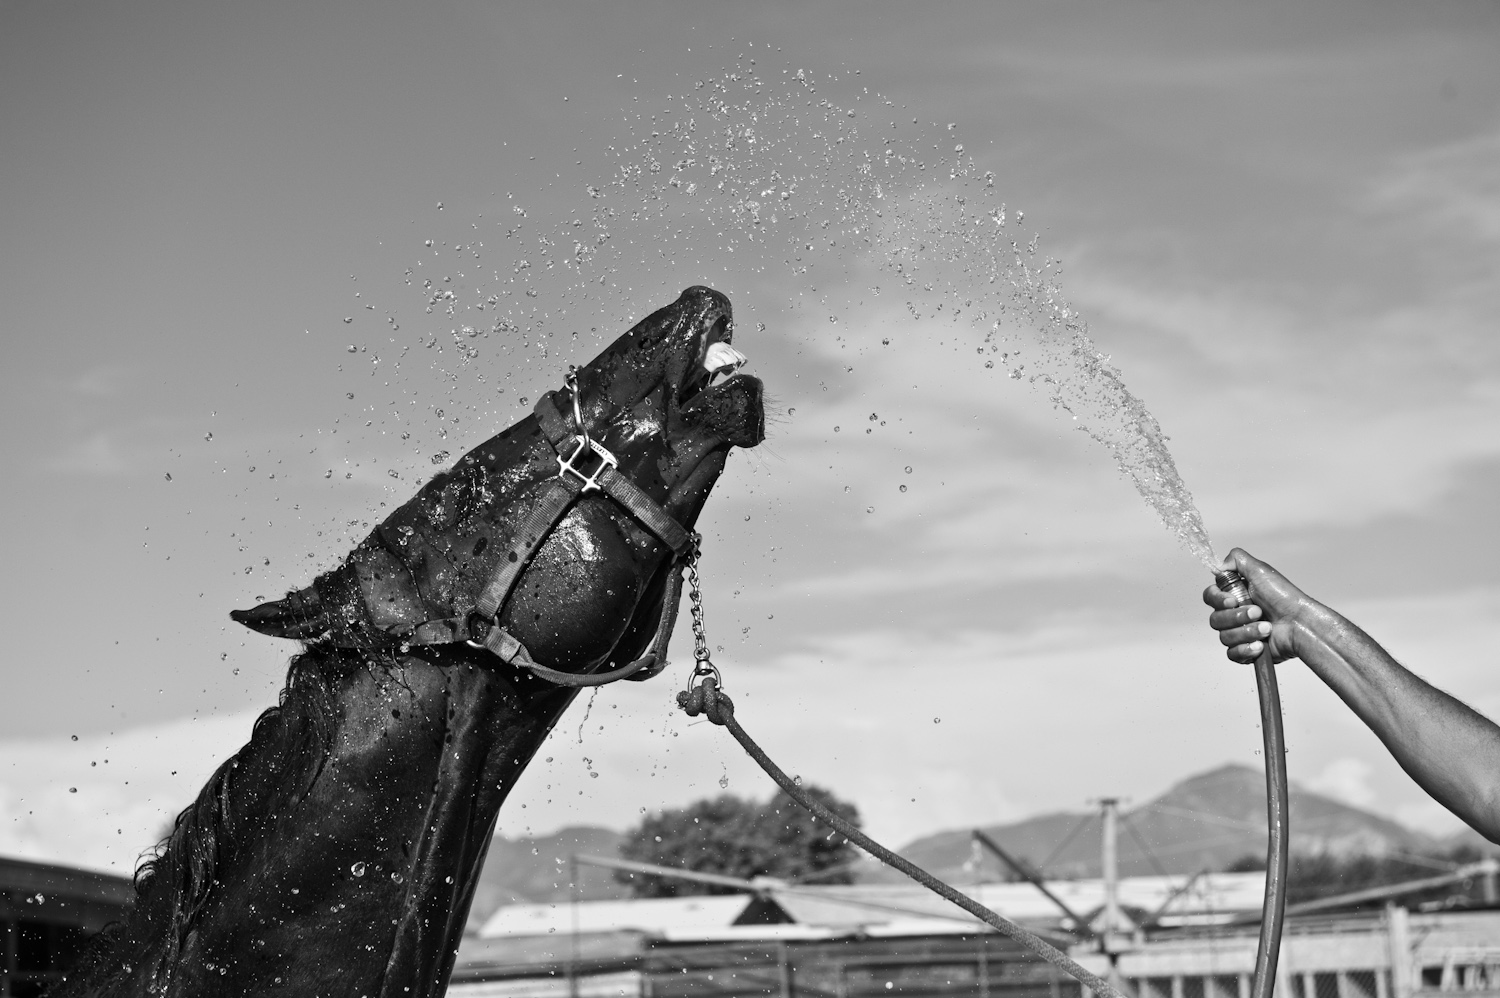 On a hot summer day, Jose Luis Pimentel cools down his horse.